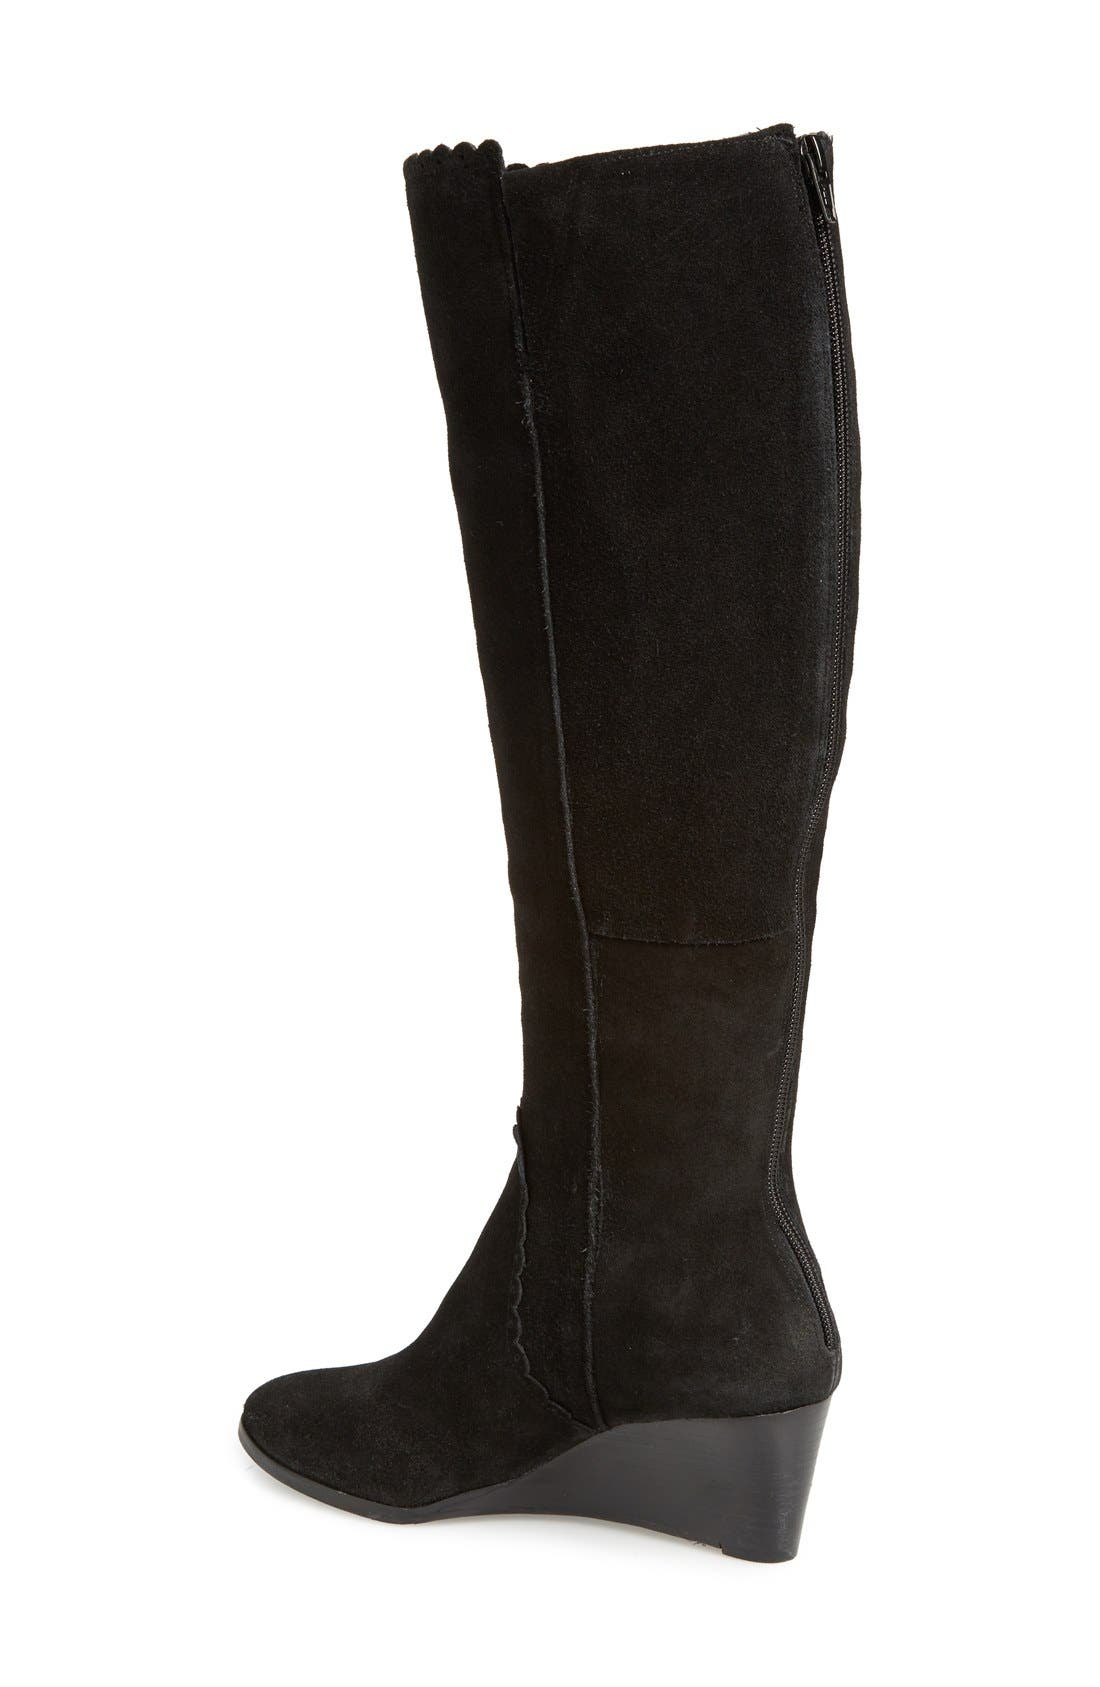 Alternate Image 2  - Jack Rogers 'Mia' Knee High Wedge Boot (Women)